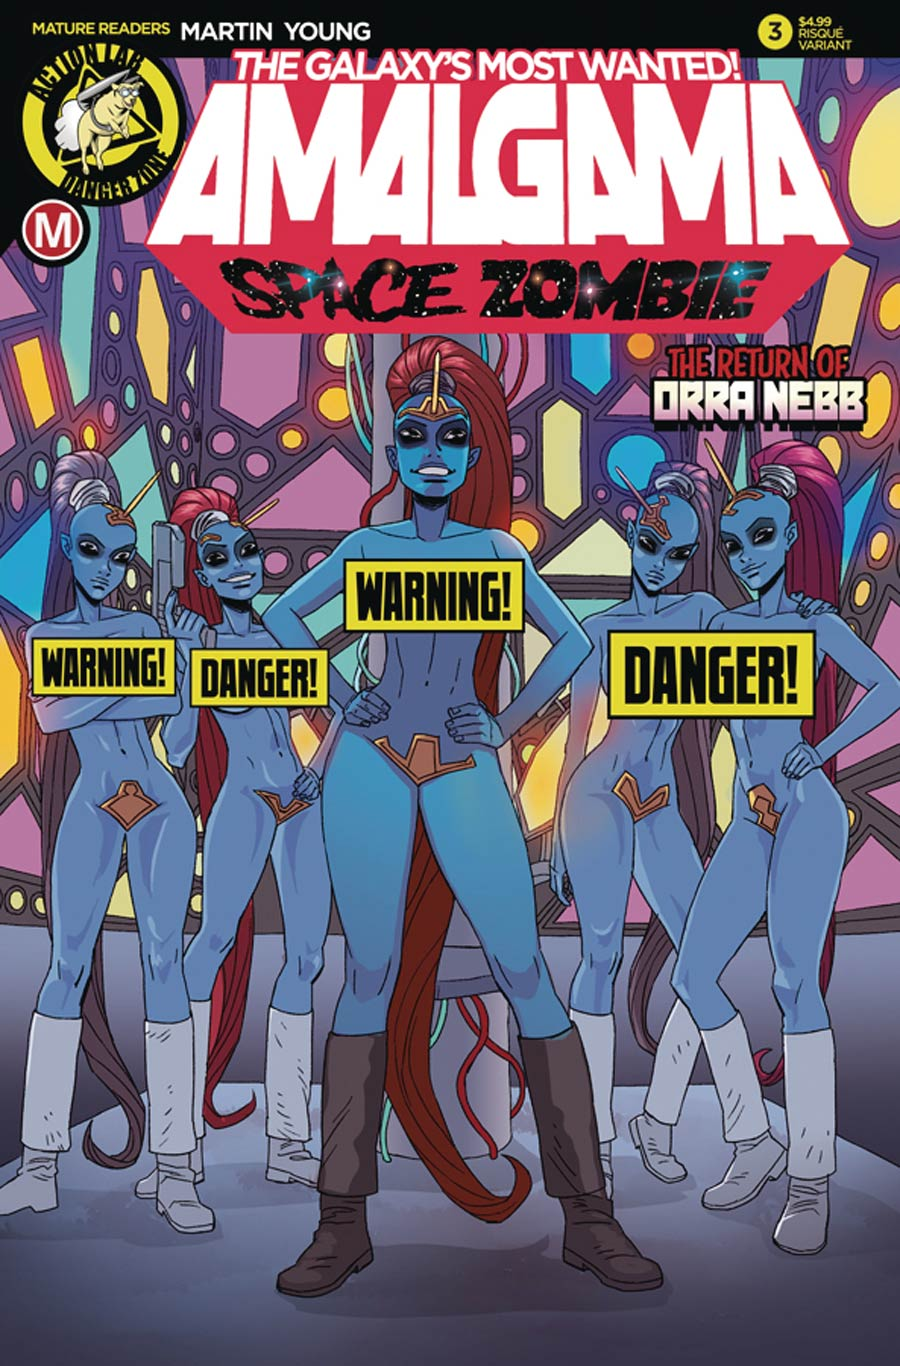 Amalgama Space Zombie Galaxys Most Wanted #3 Cover B Variant Winston Young Risque Cover